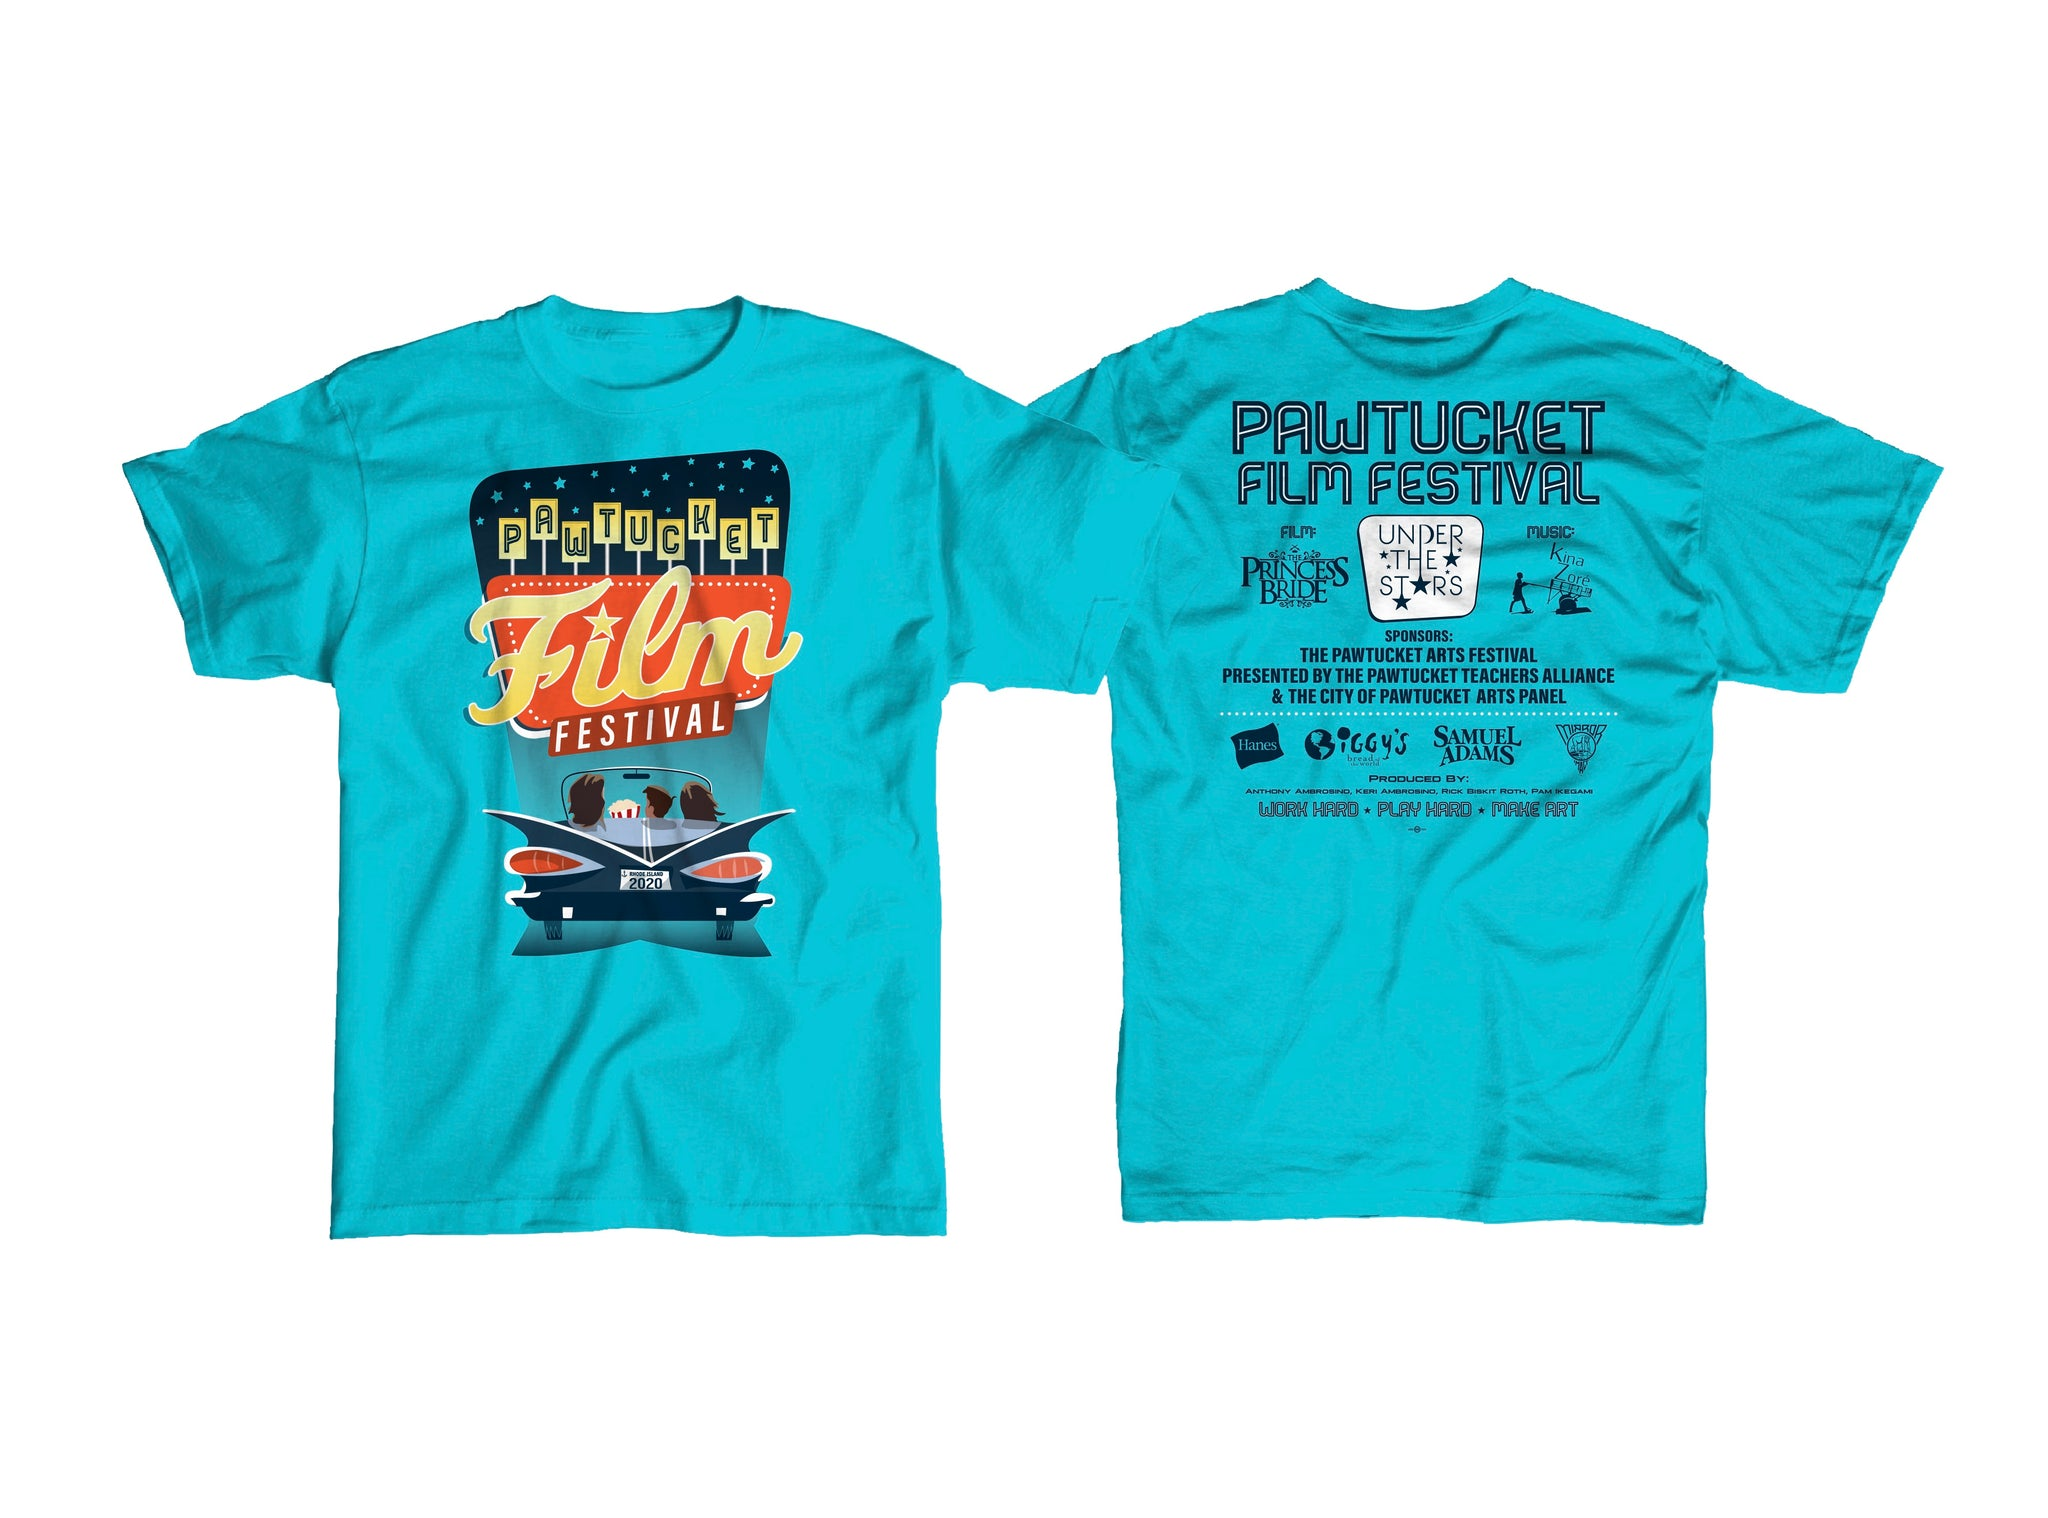 Pawtucket Film Festival 2020 T-shirt